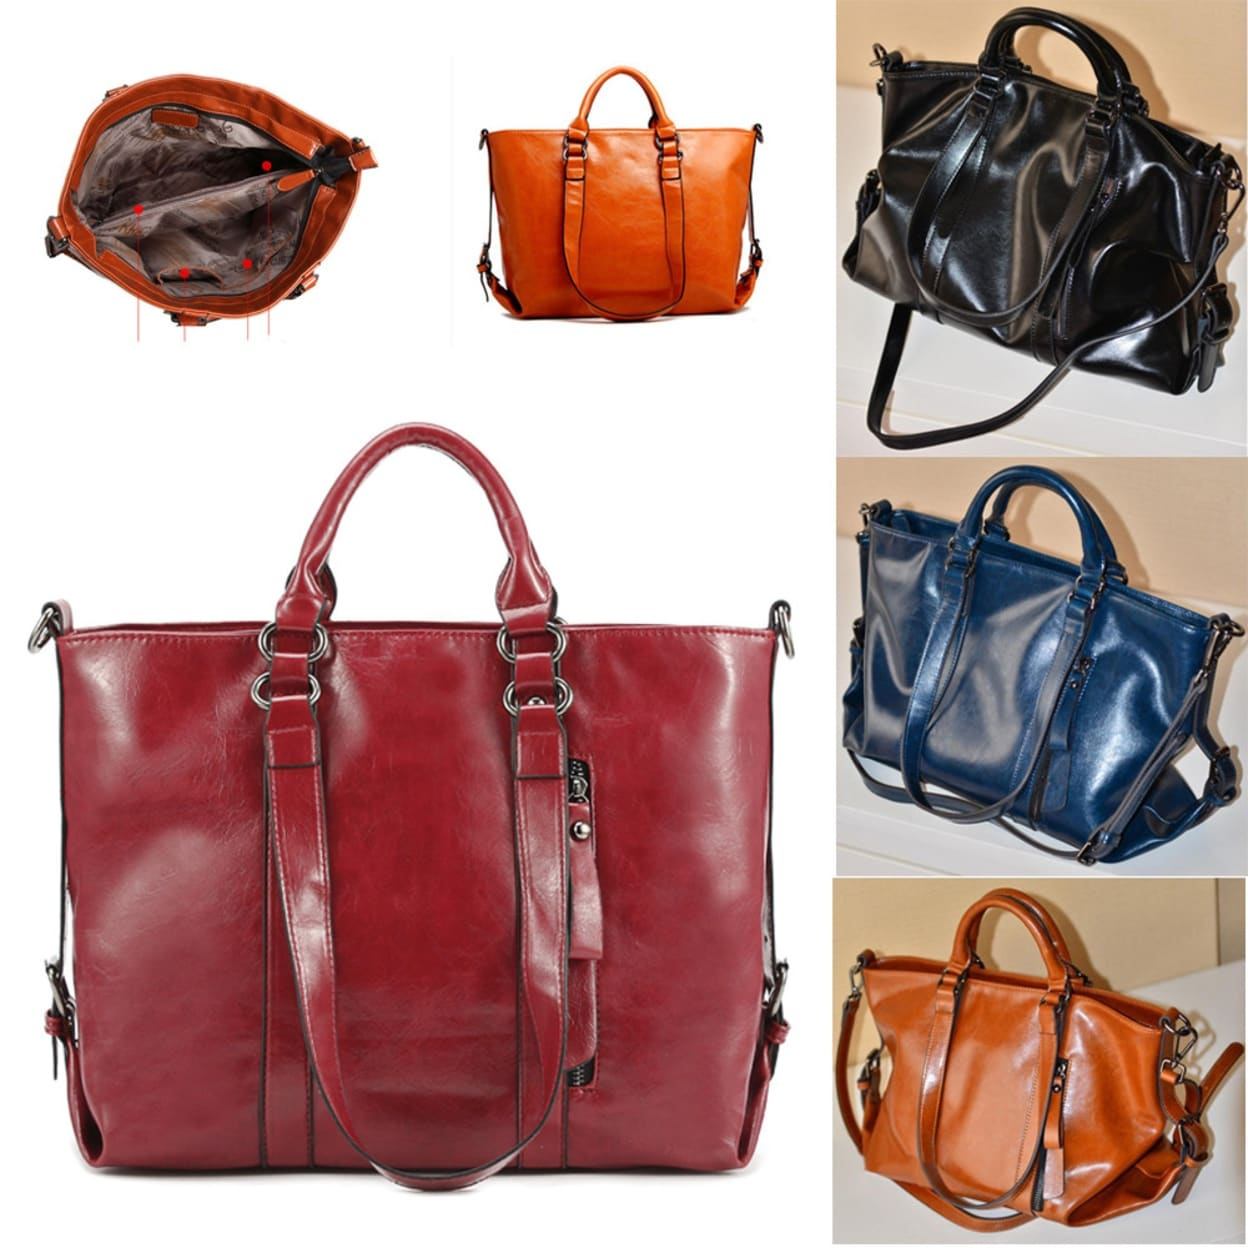 59247b4798 Fashion Leather Bags Tote Leather Handbags Women Messenger Bags Shoulder  Bags